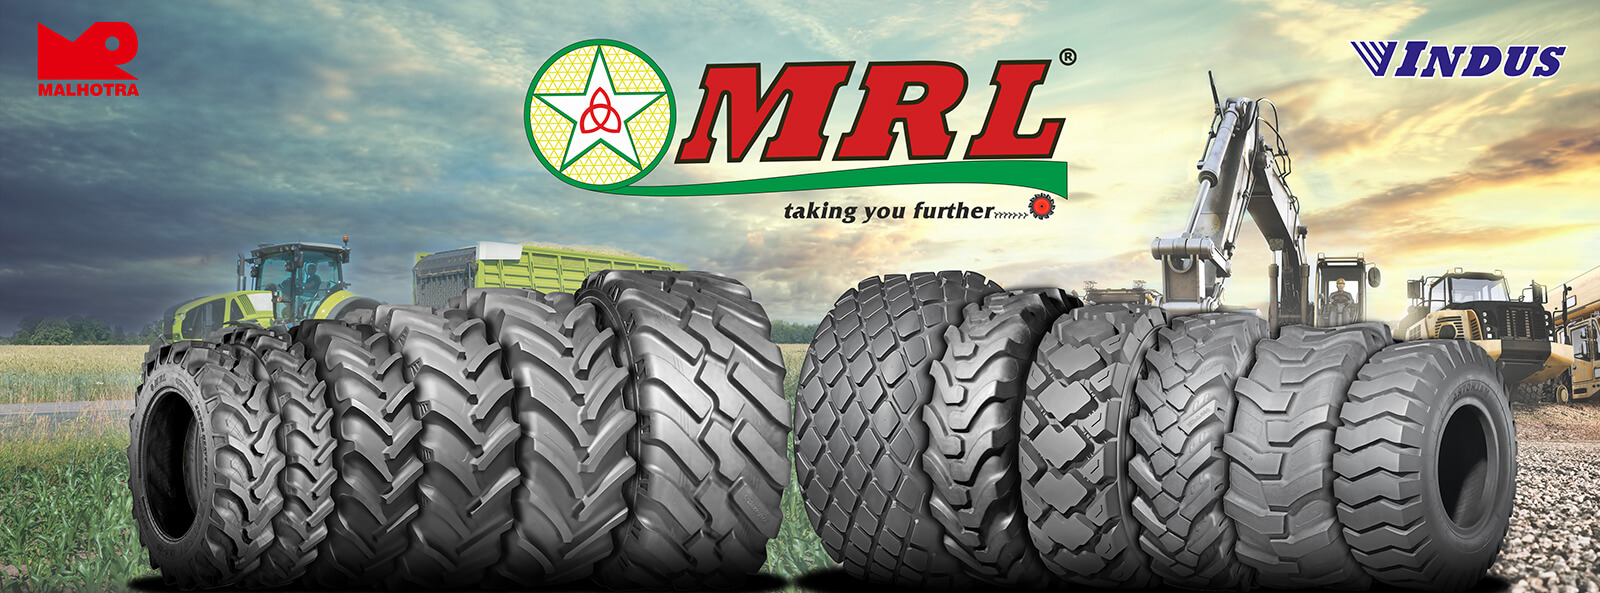 Indian Tyre Company, India Tyre Manufacturers, Tyre Exporters